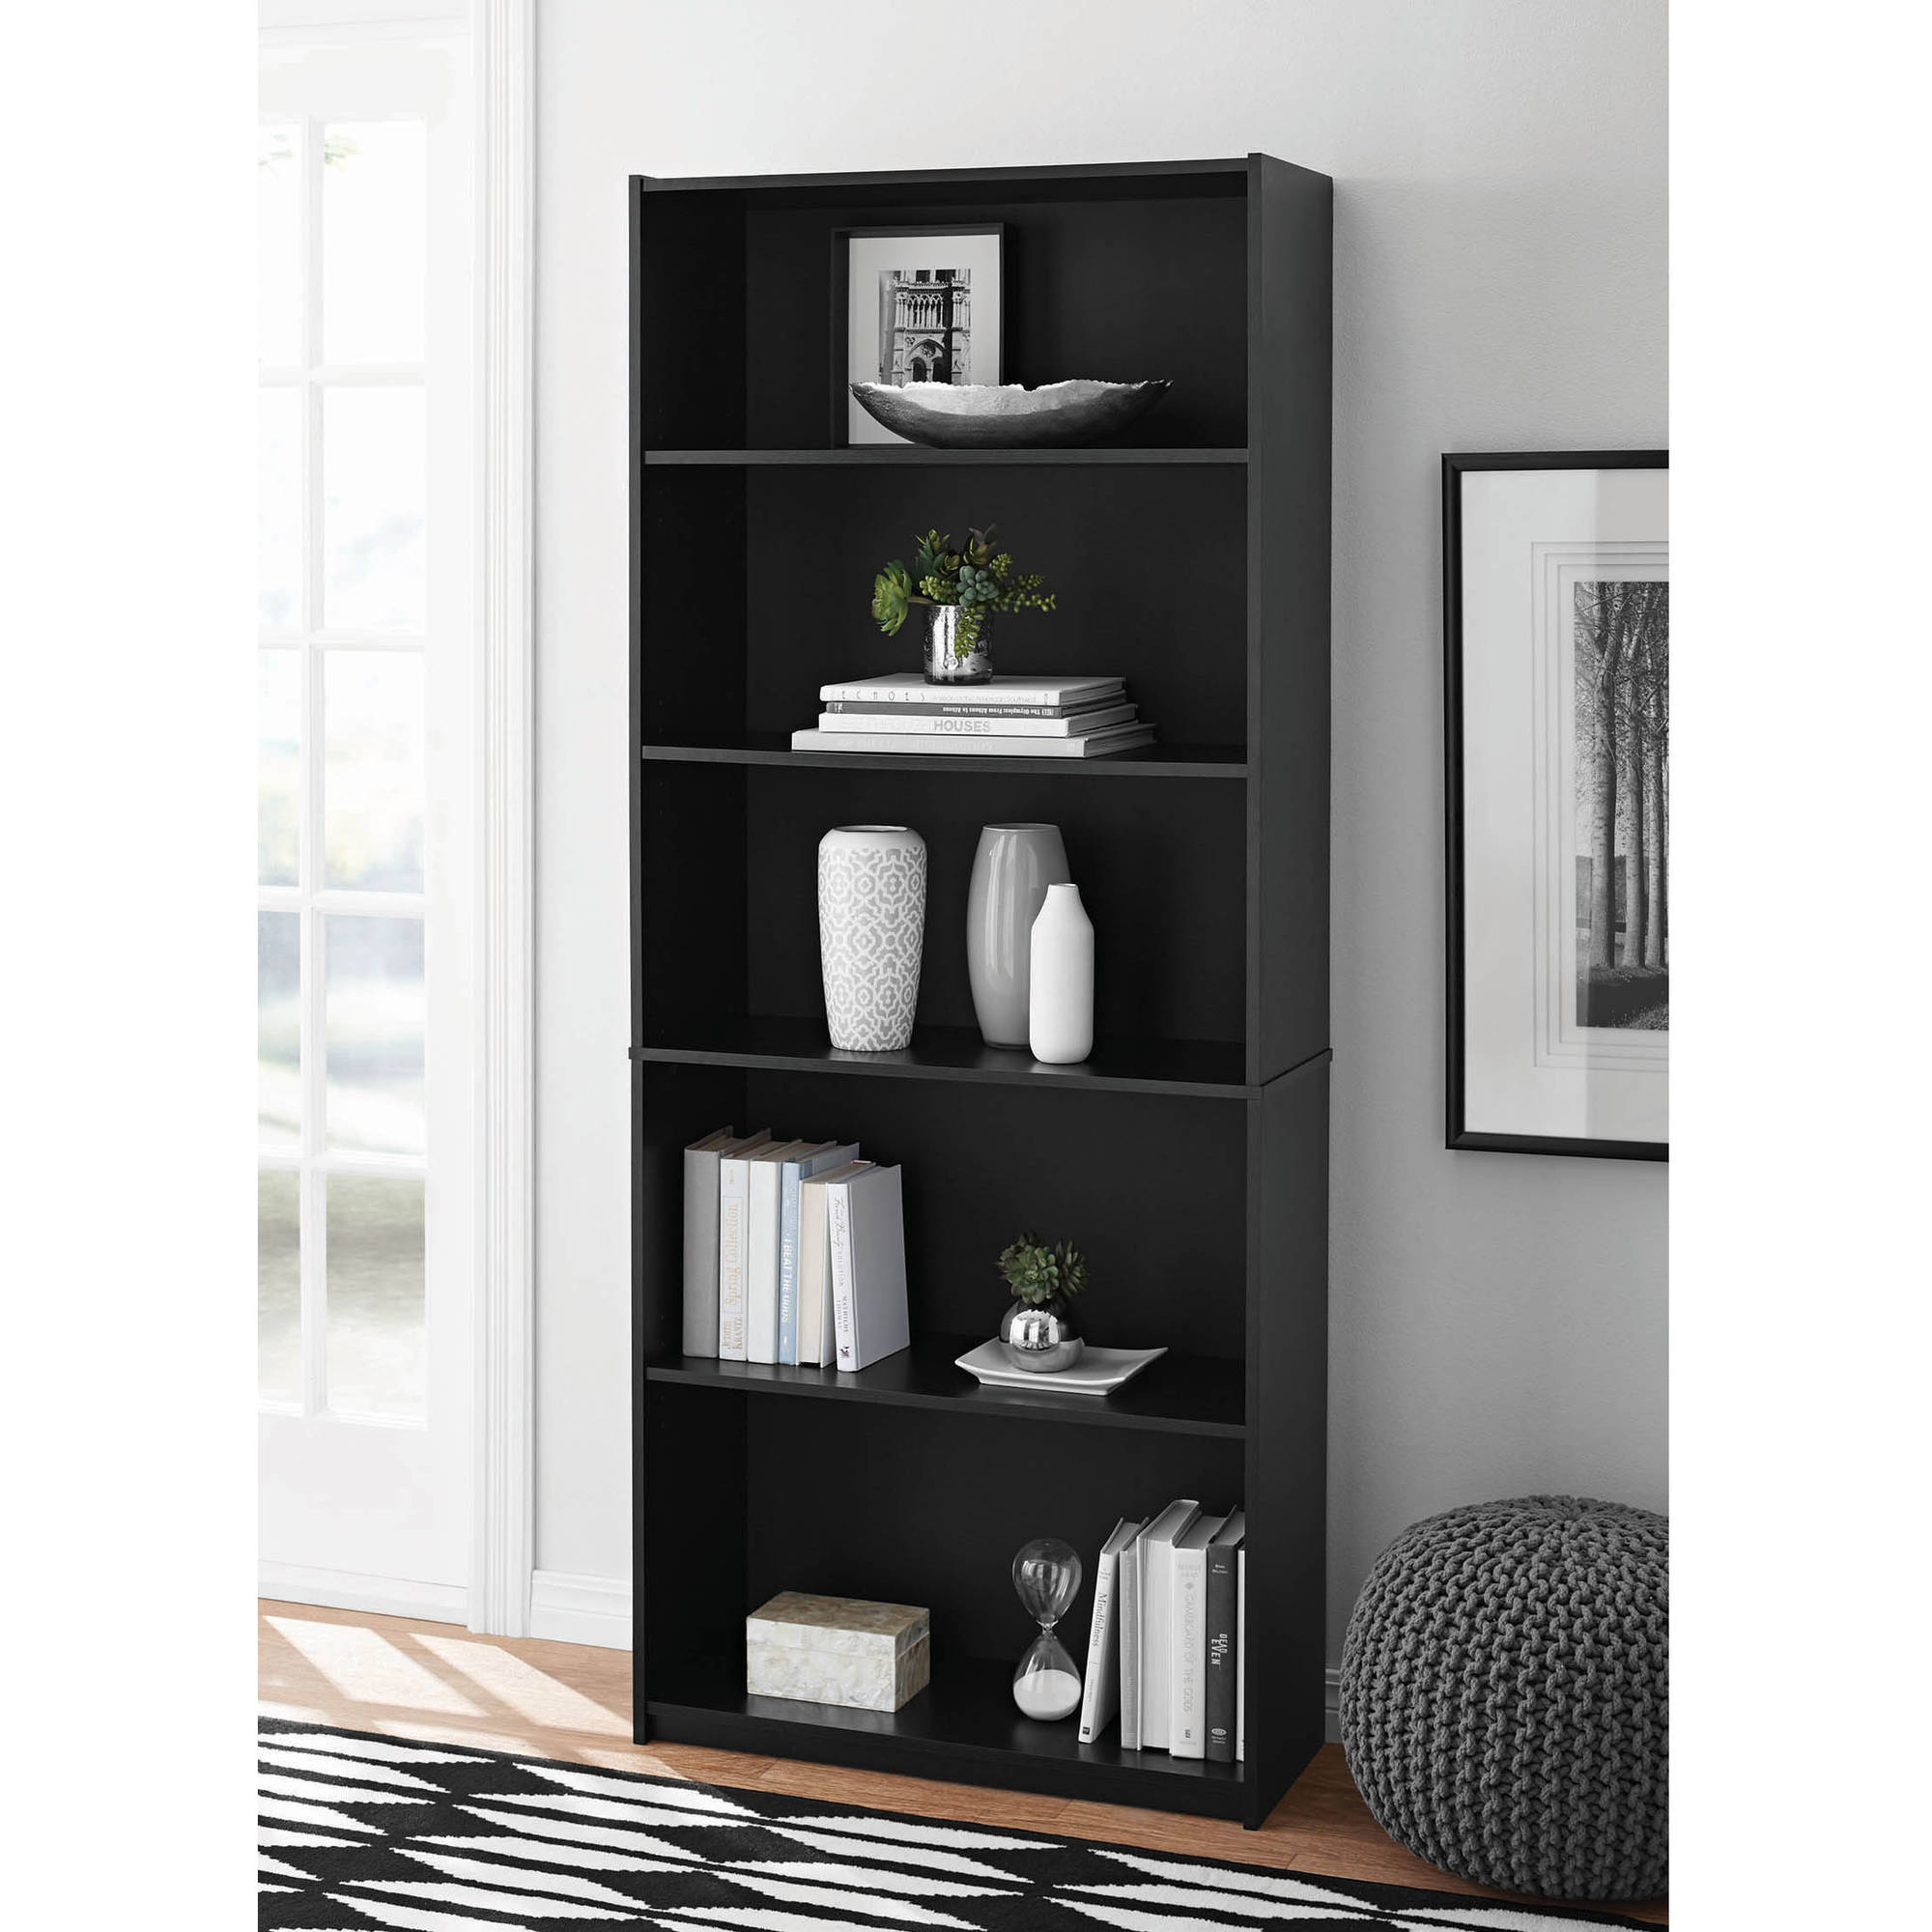 Adjustable 5 Shelf Wood Bookcase Storage Shelving Book